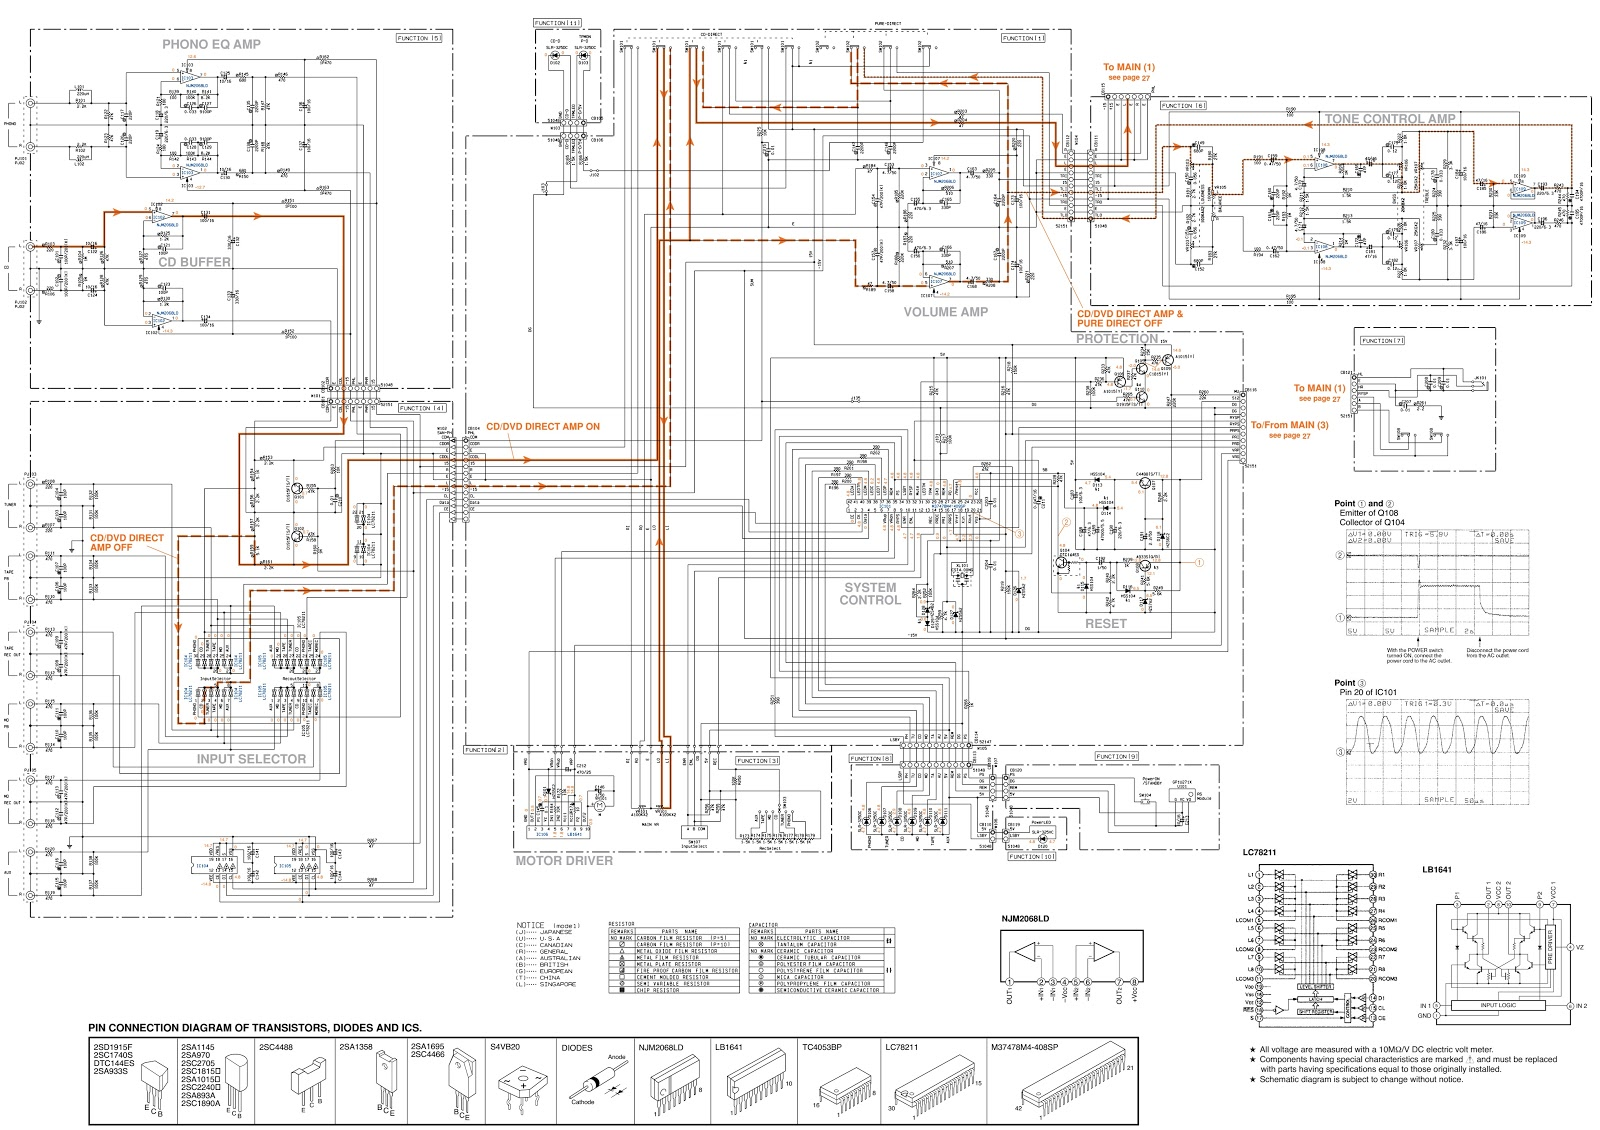 Yamaha Ax496 Stereo Amplifier Circuit Diagram Adjustments Model A Wiring Amp Parts List For Schematic Click On The Pictures To Zoom In